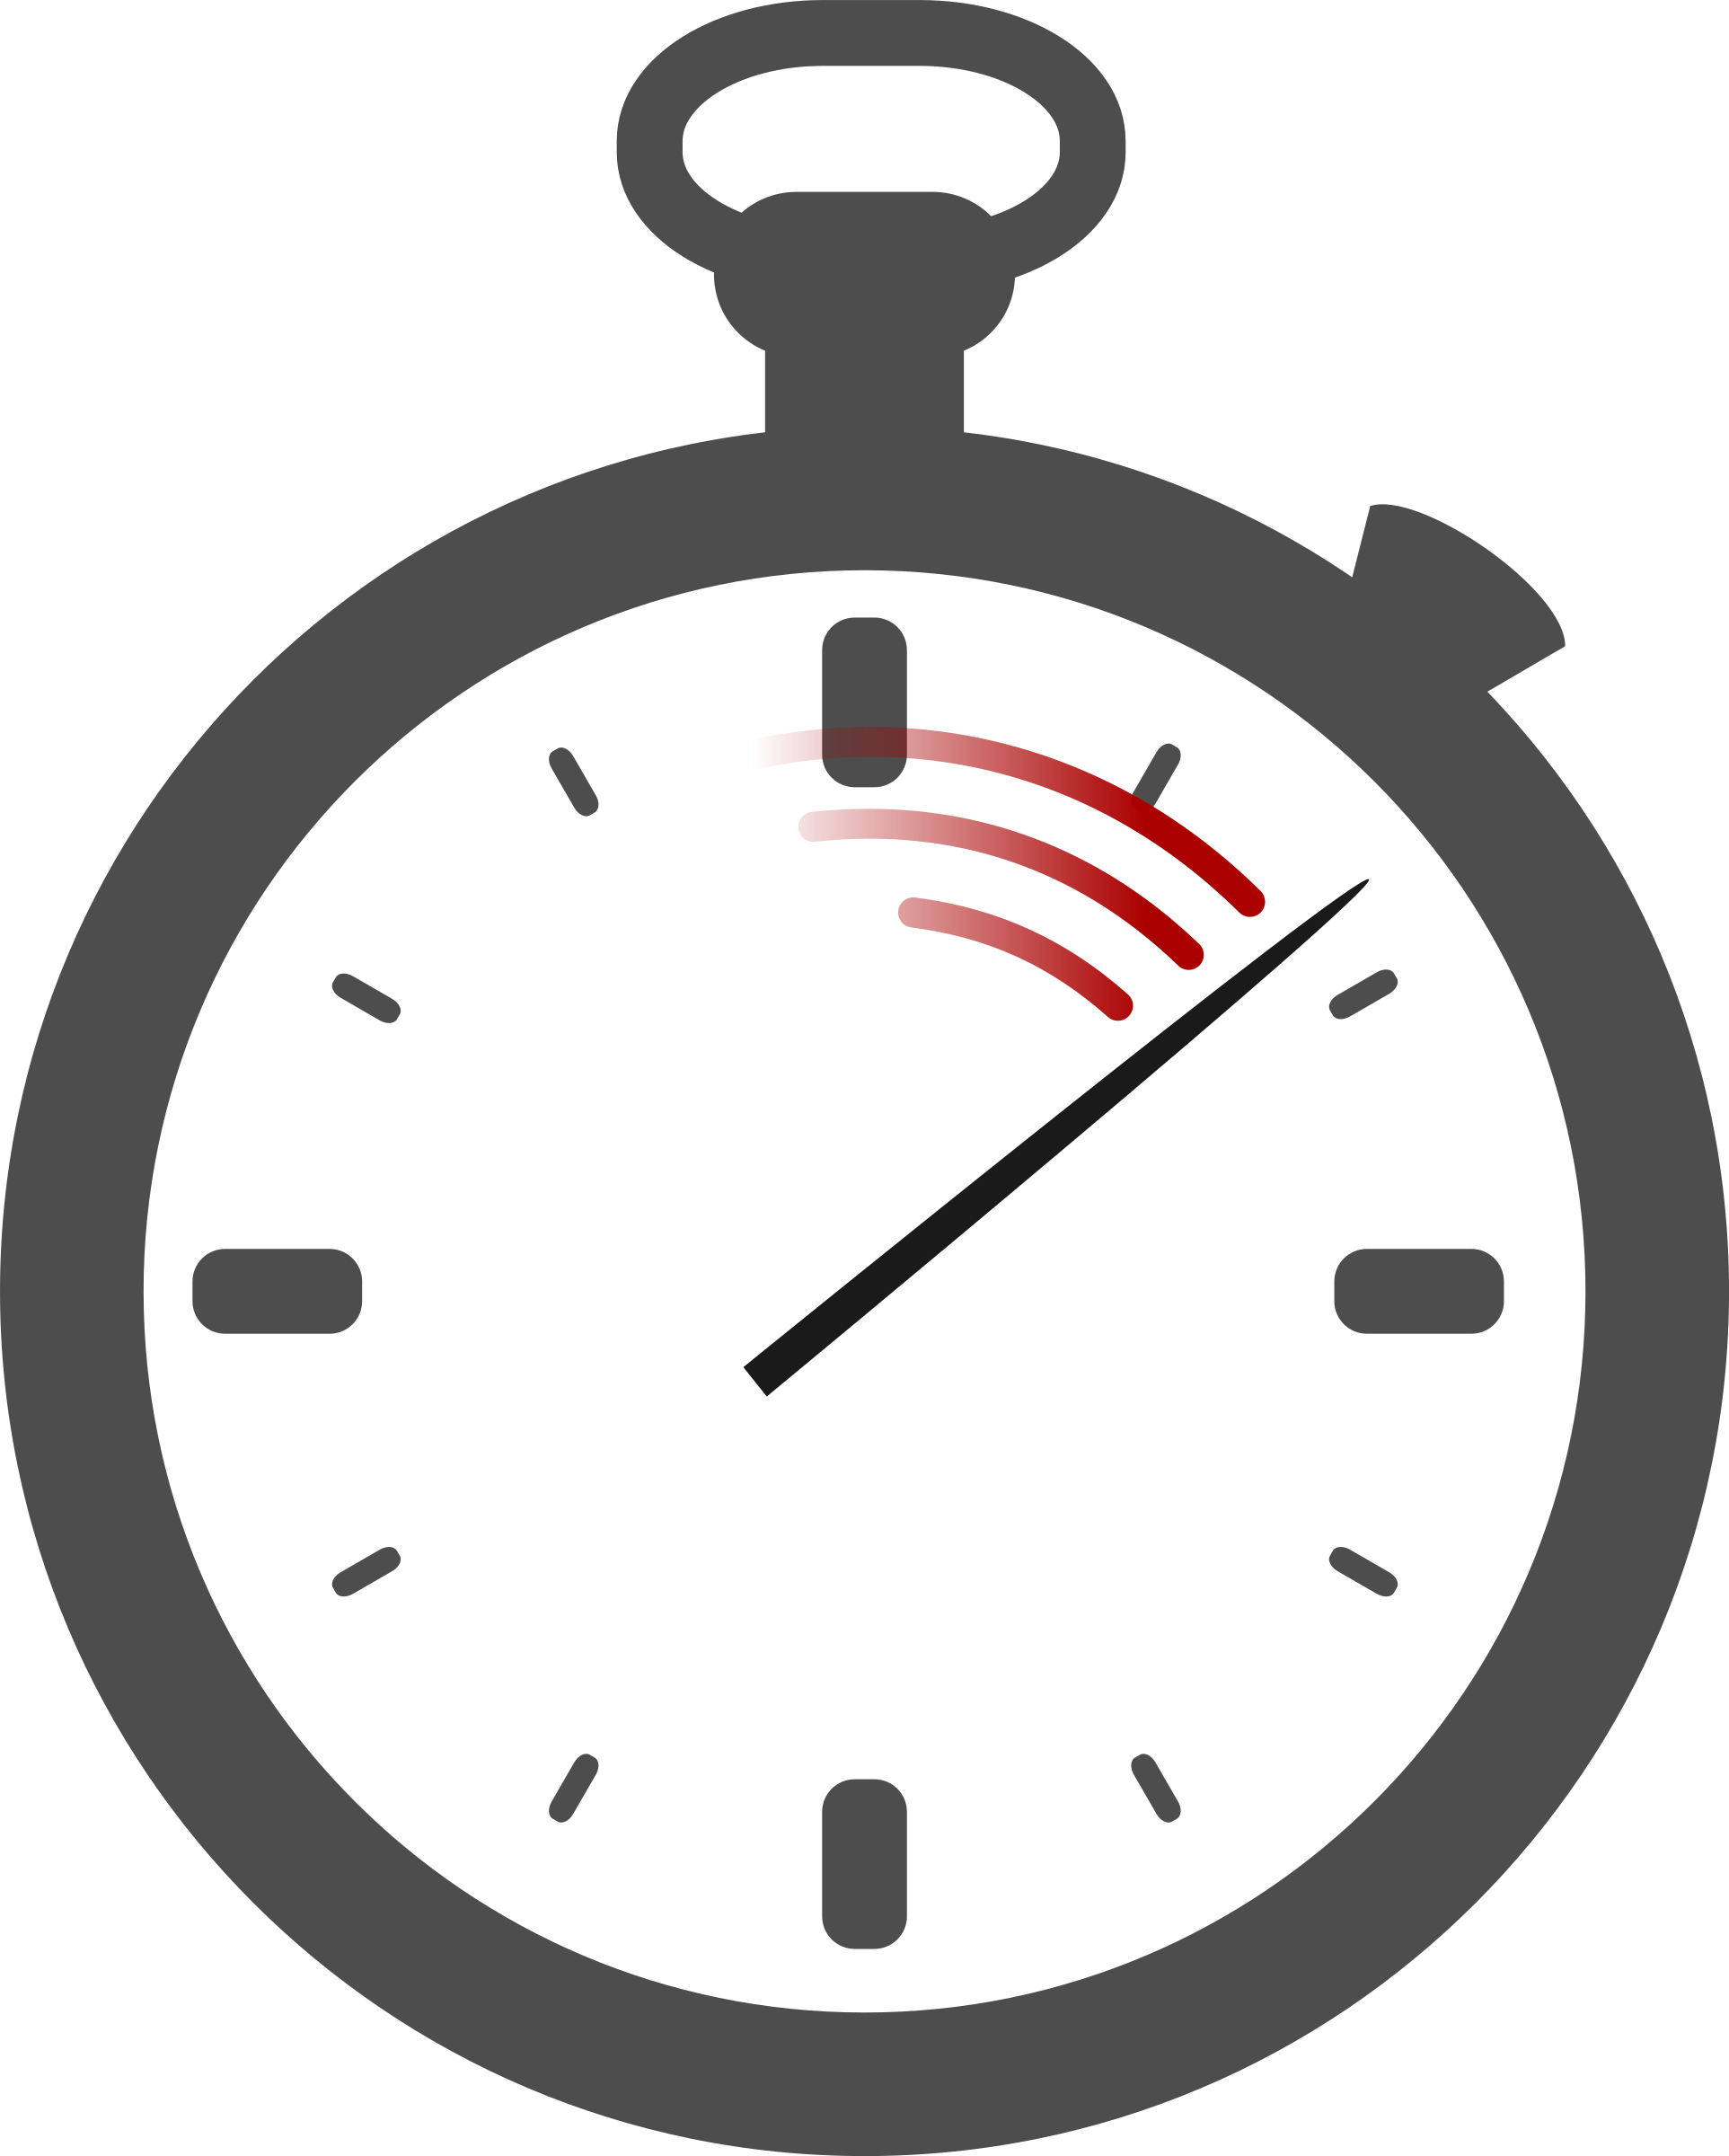 Hand clipart stopwatch. No shading big image